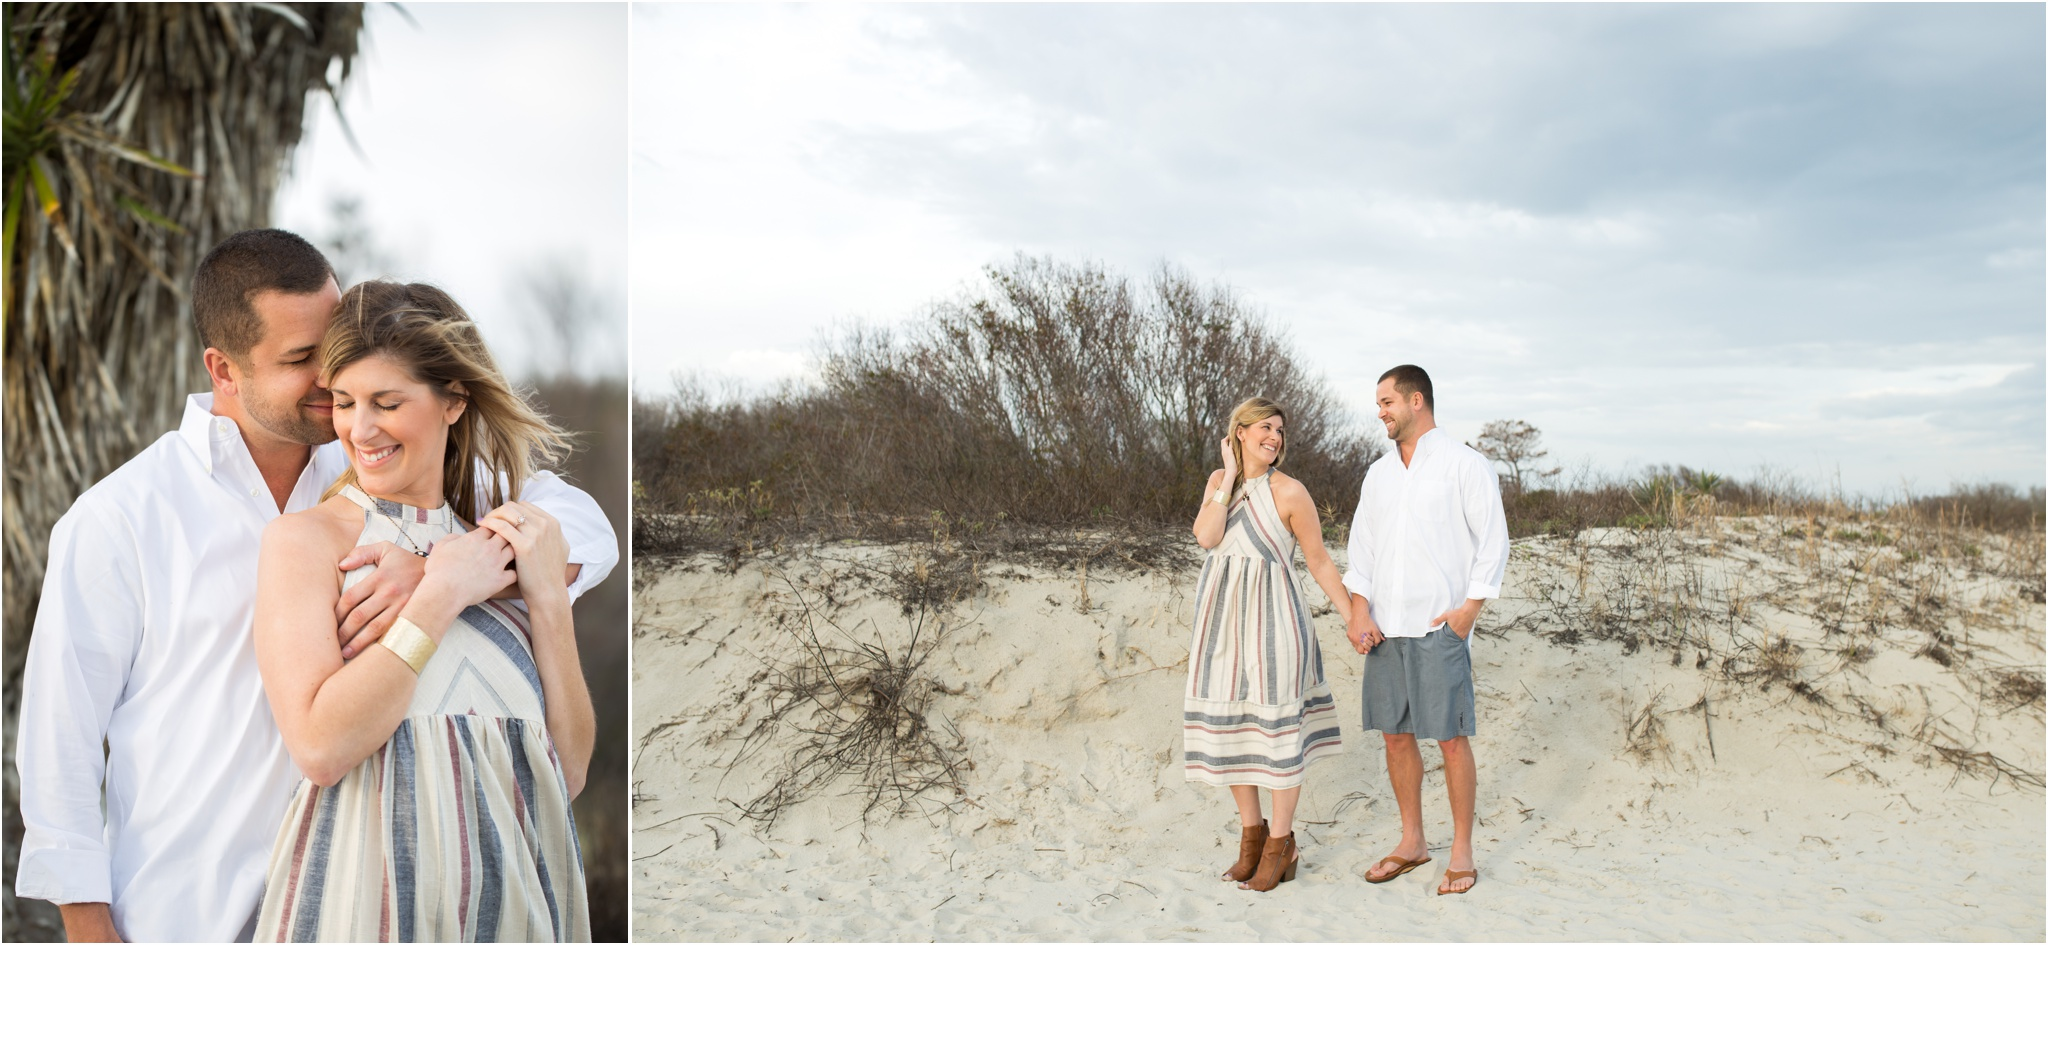 Rainey_Gregg_Photography_St._Simons_Island_Georgia_California_Wedding_Portrait_Photography_0560.jpg